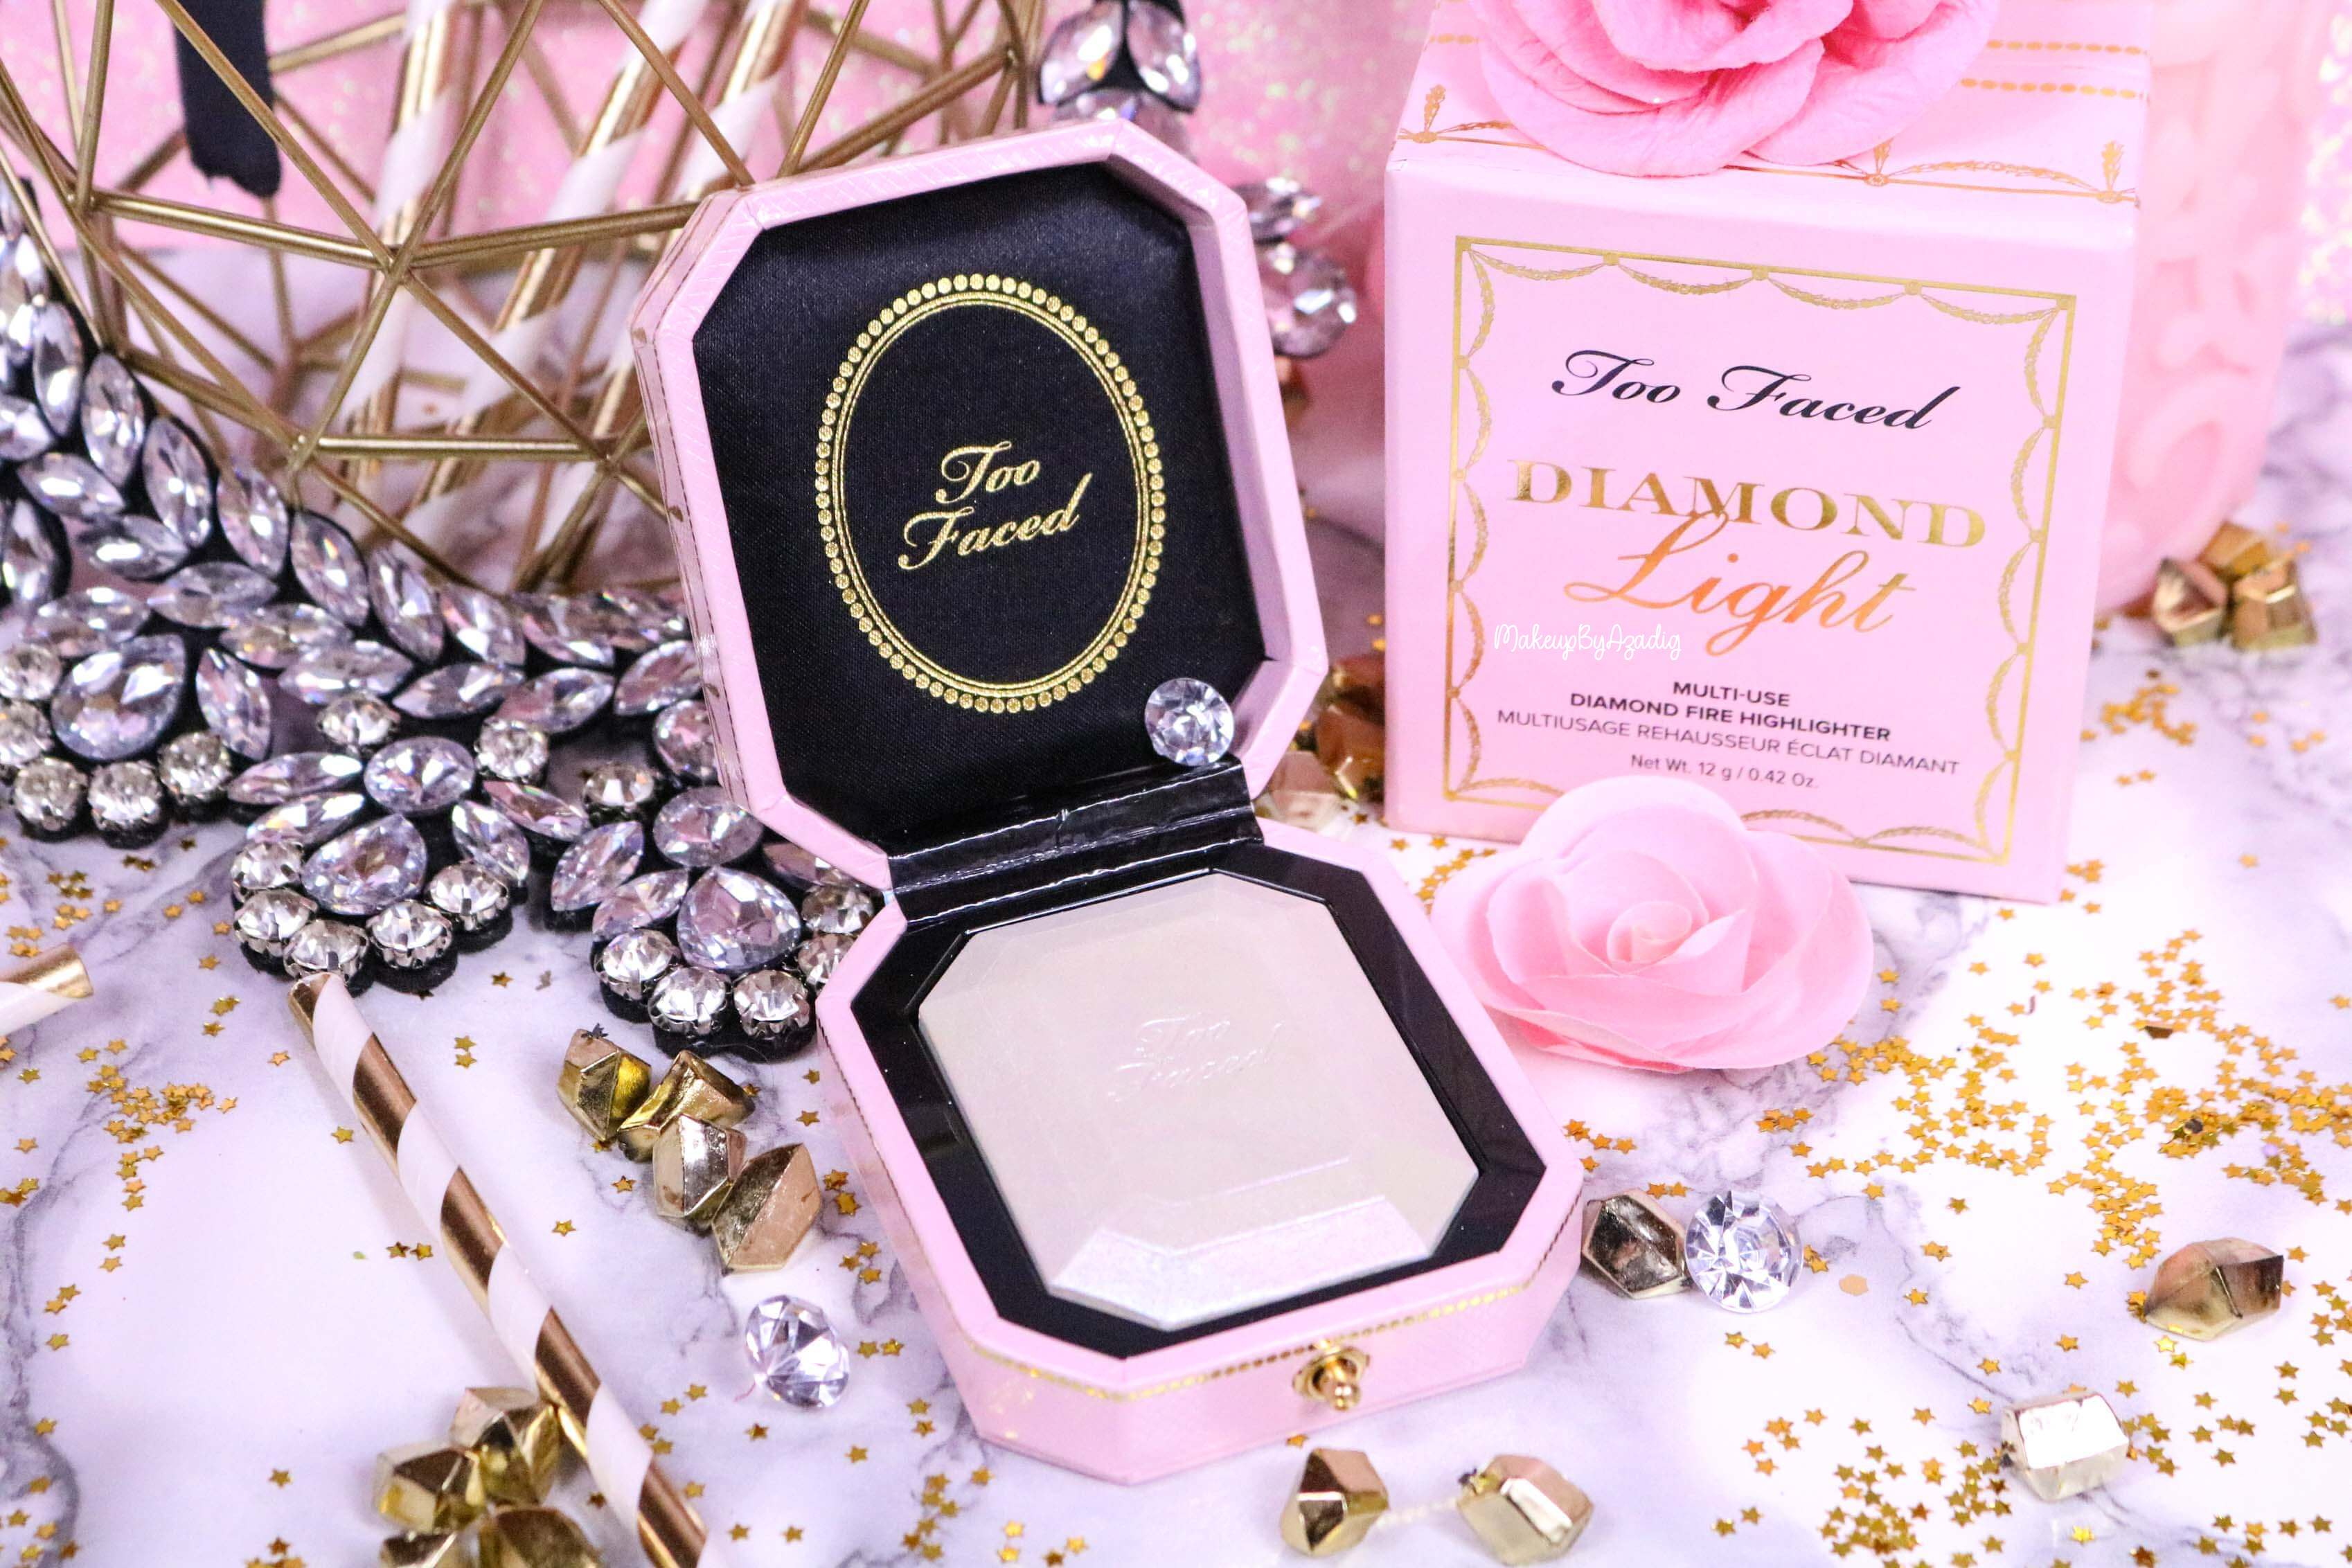 revue-highlighter-diamond-light-toofaced-enlumineur-diamant-collection-makeup-makeupbyazadig-sortie-france-influencer-swatch-avis-prix-miniature